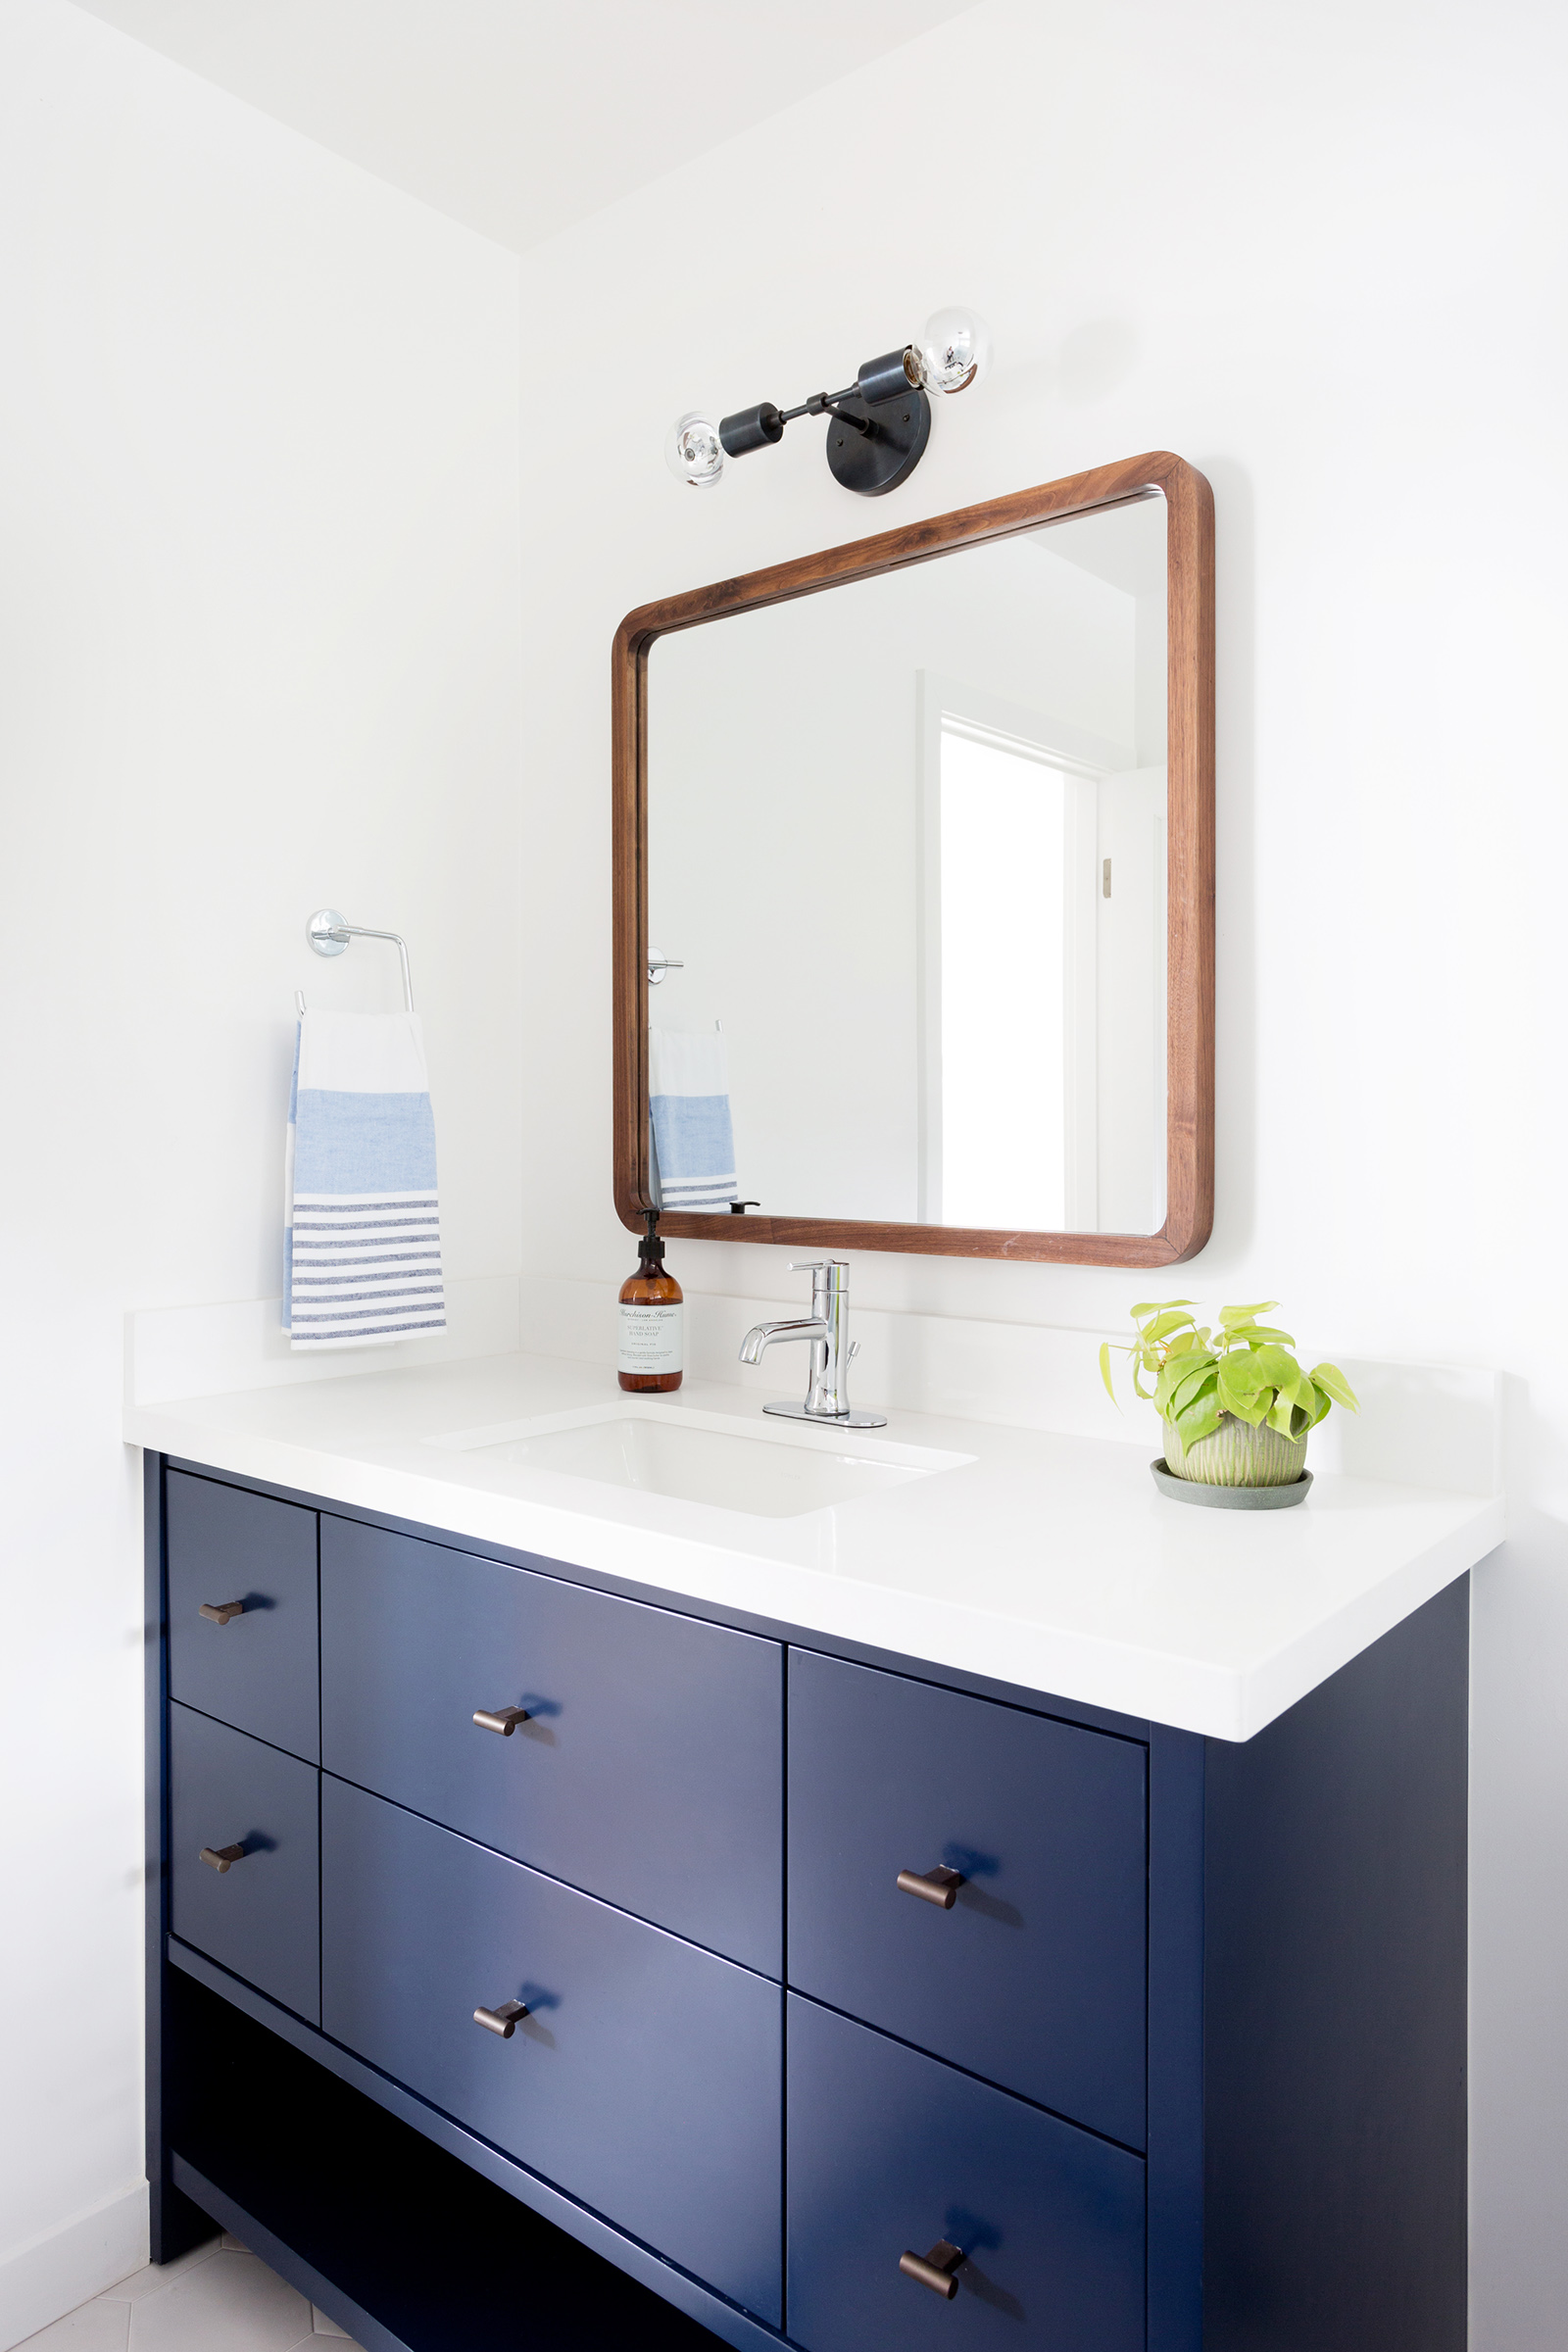 Warm modern bathroom design by Carly Waters Style